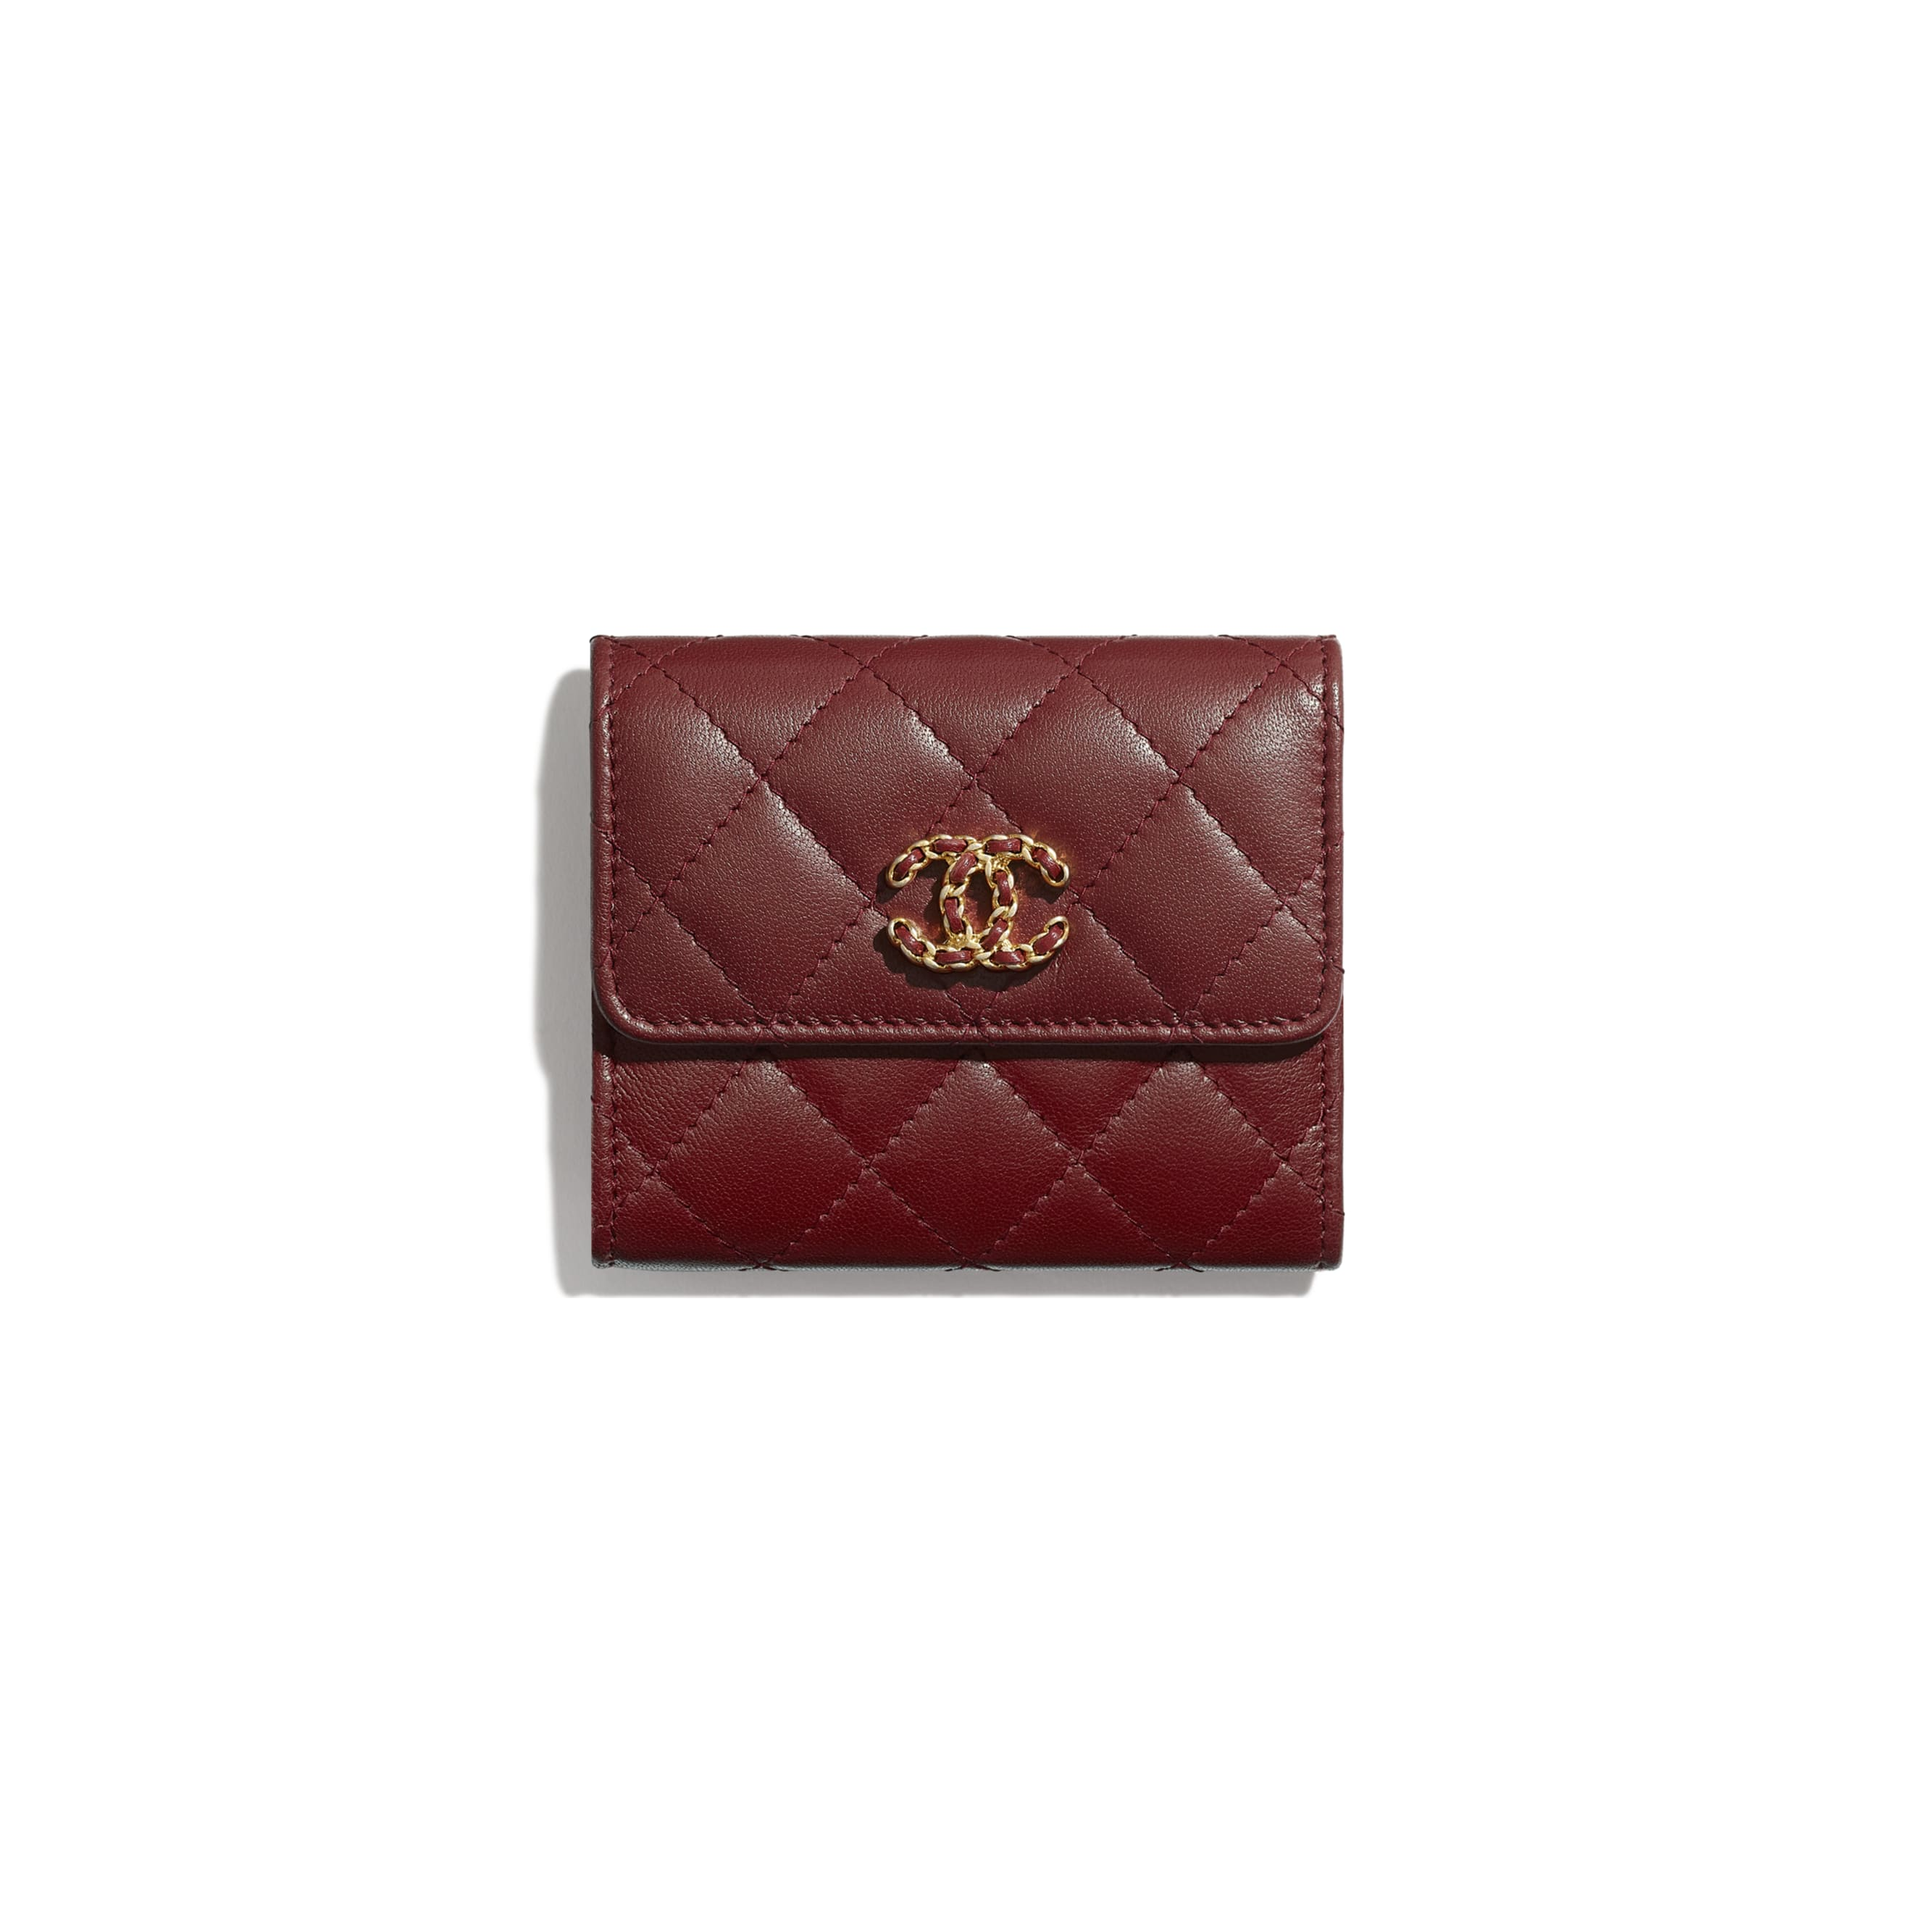 Small Flap Wallet - Burgundy - Lambskin - Default view - see standard sized version